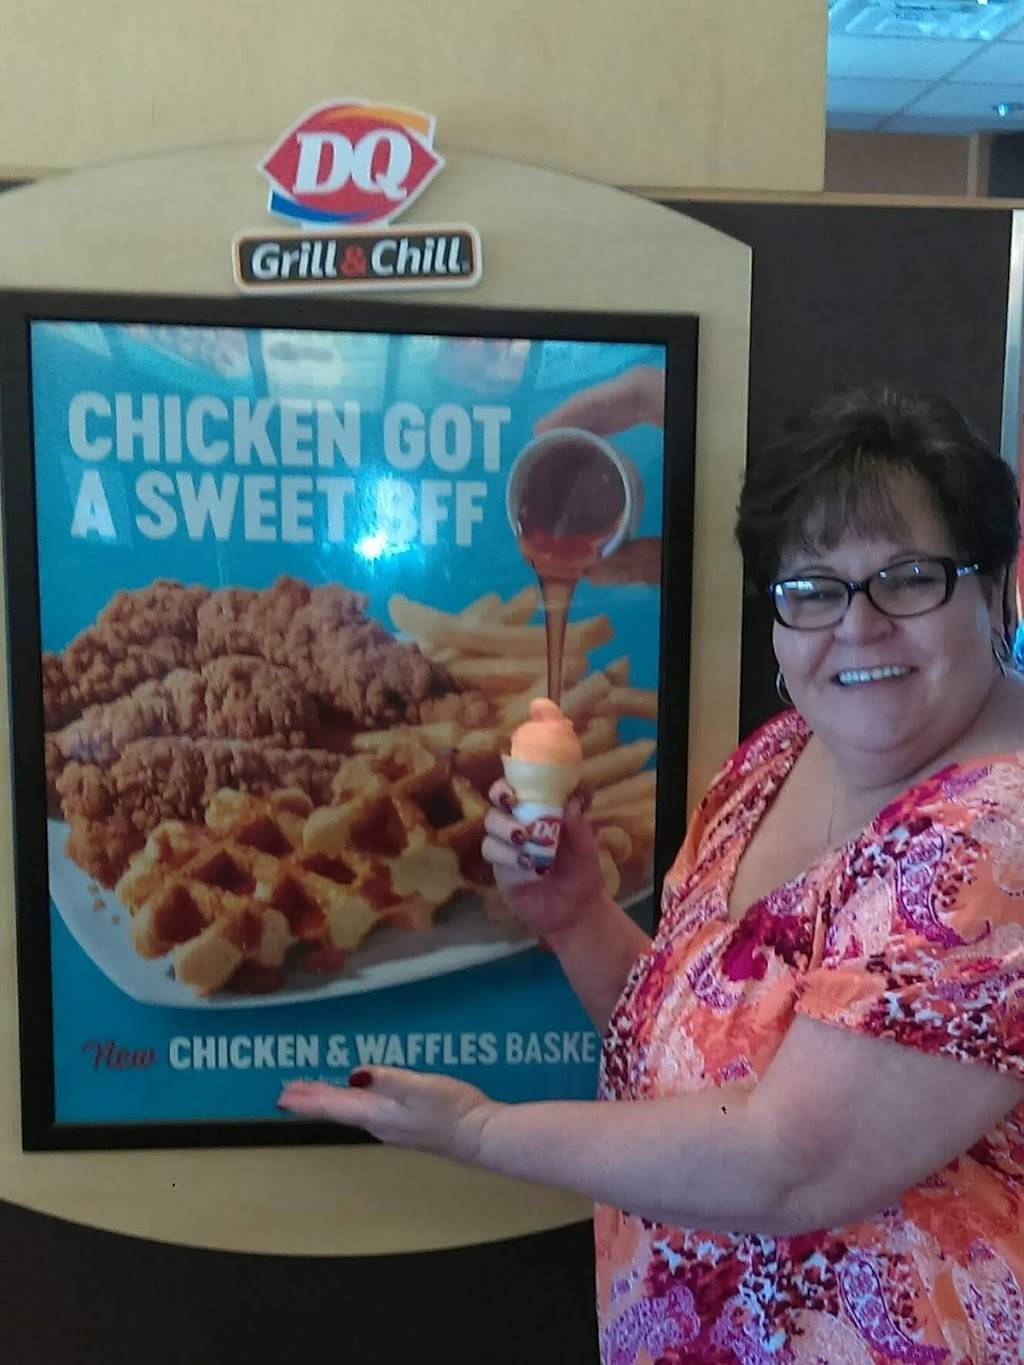 Dairy Queen Grill & Chill | restaurant | 6370 US-98, Hattiesburg, MS 39402, USA | 6019092204 OR +1 601-909-2204